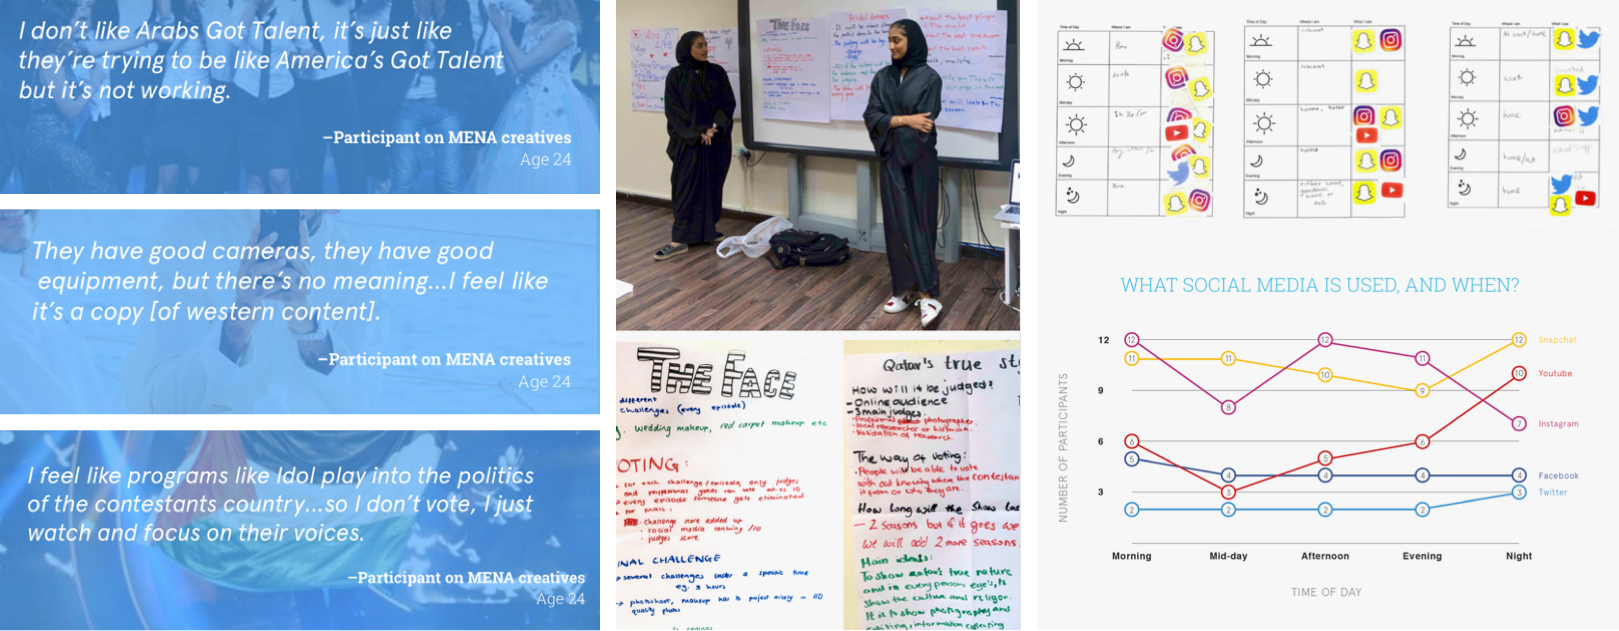 Doha, Qatar workshop user quotes (left), contest ideas (middle), and social media consumption habits (right)